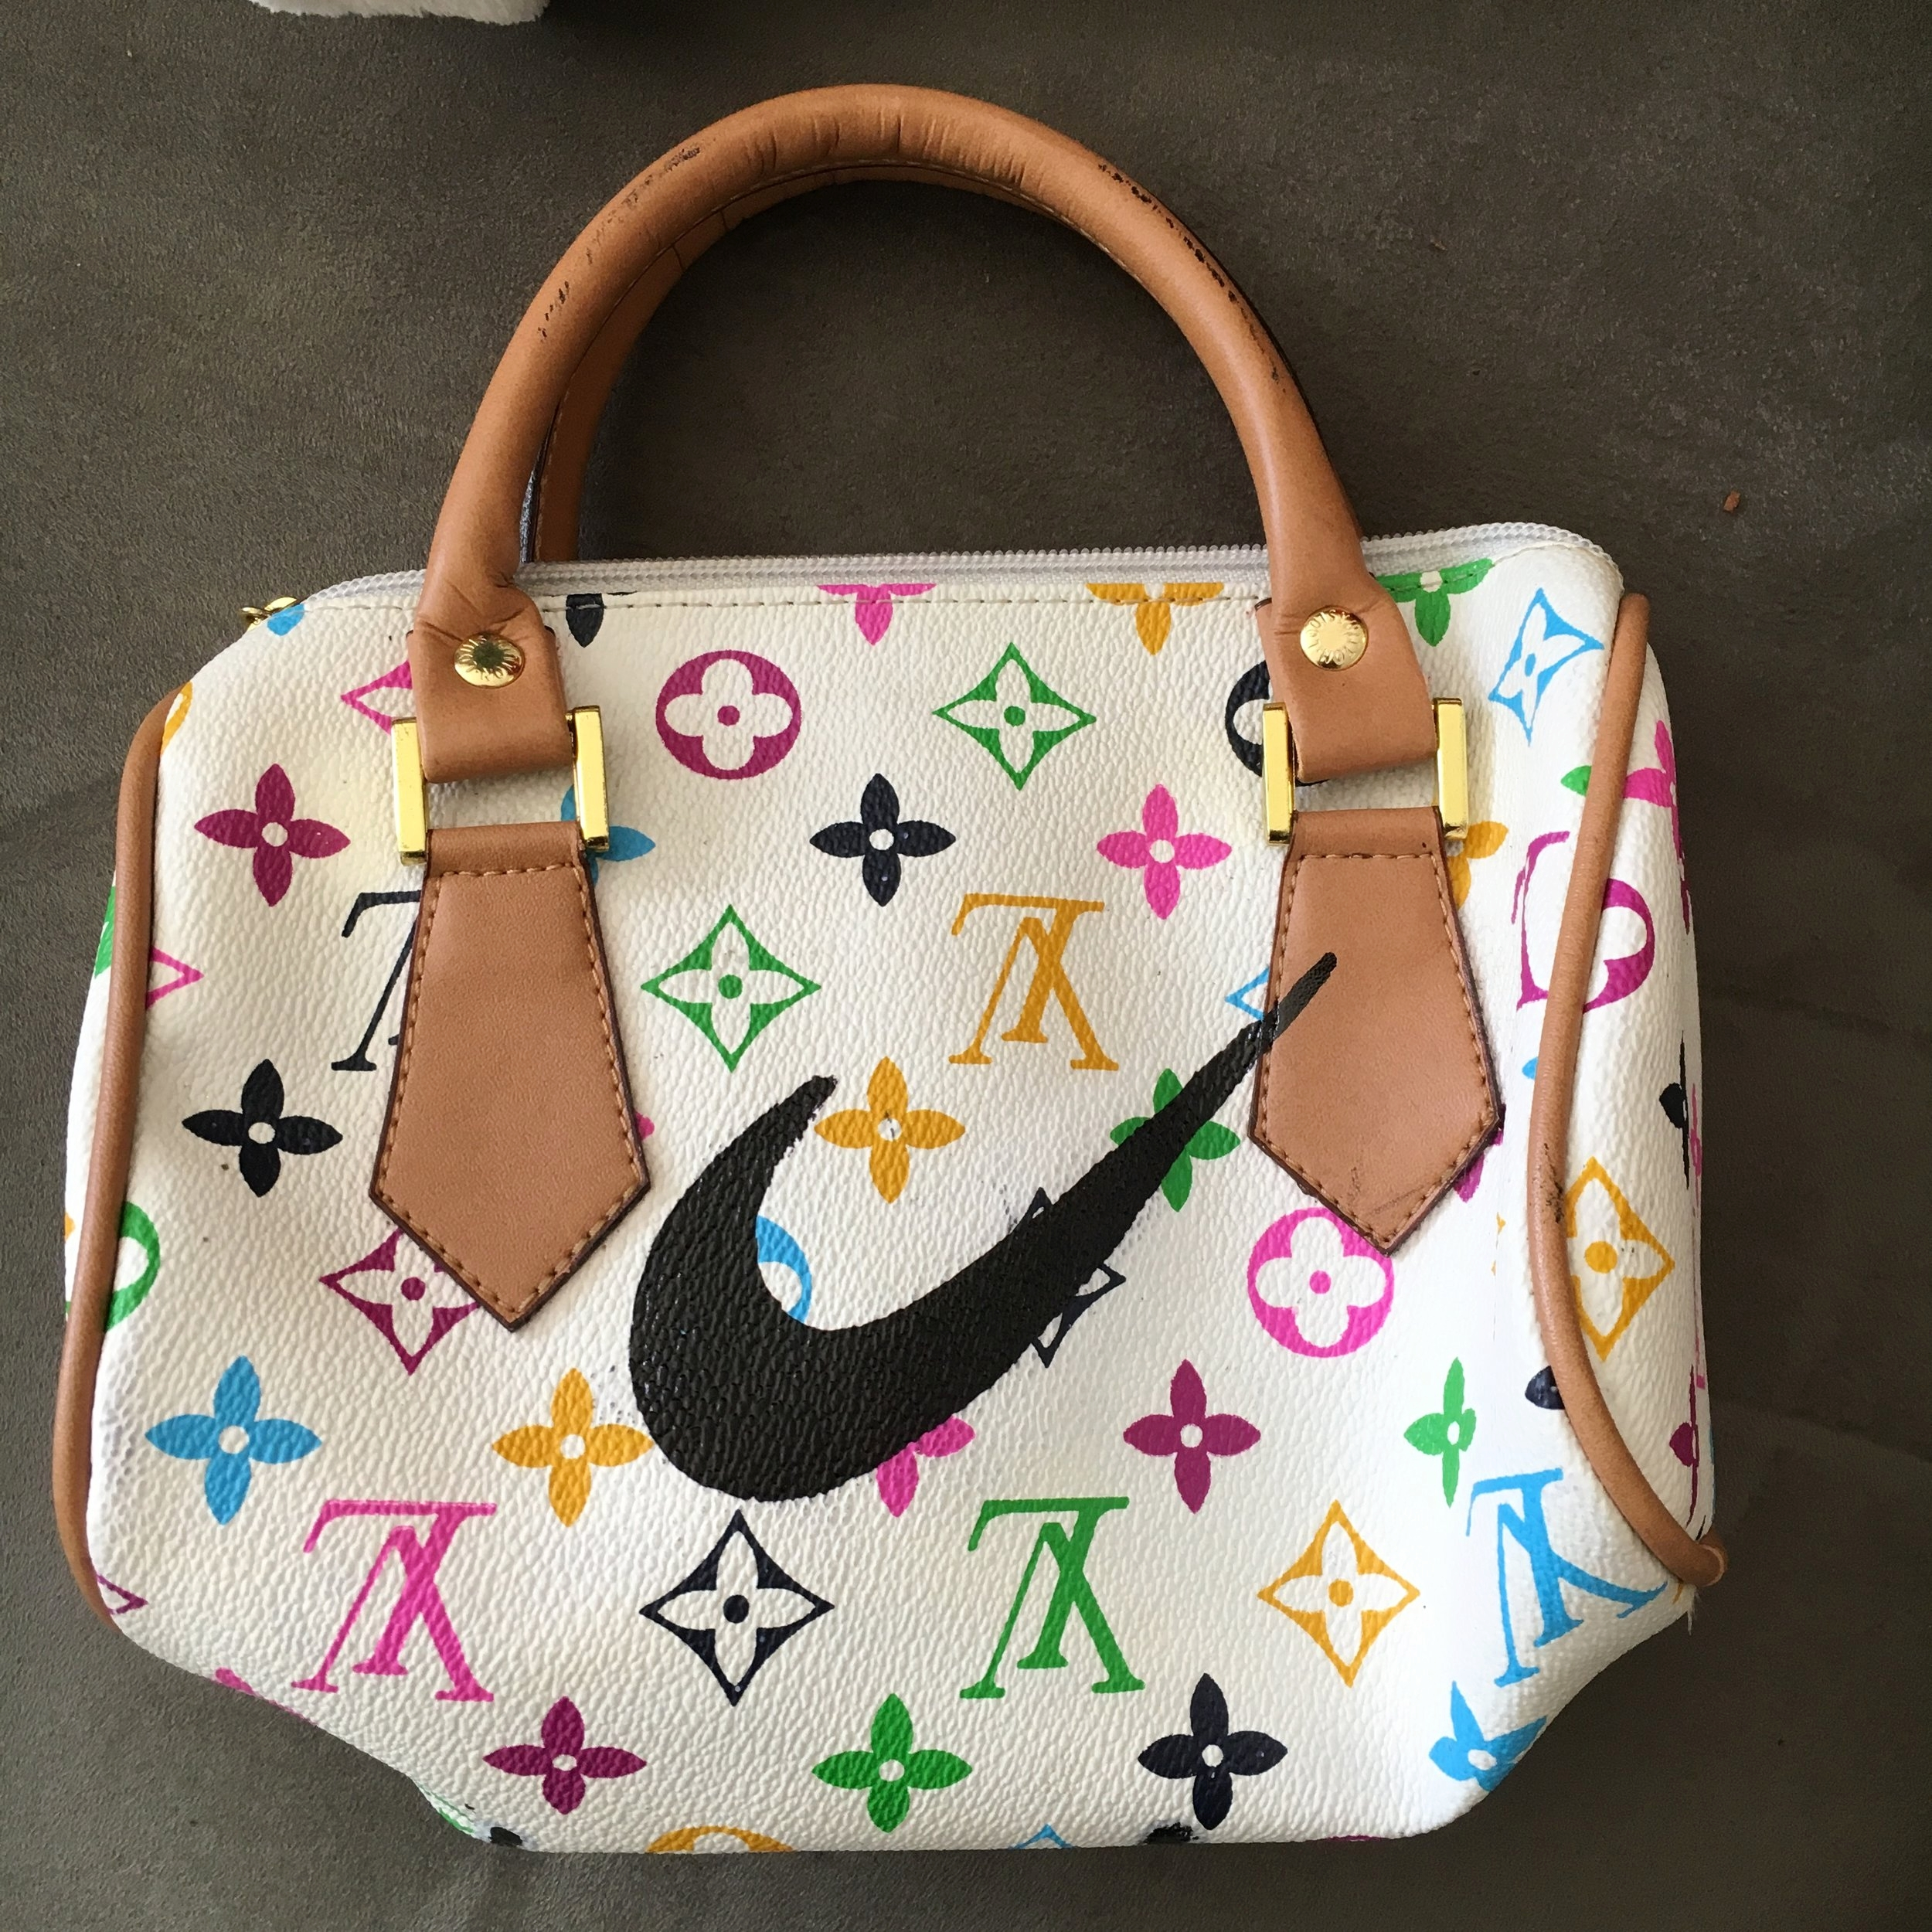 Just Do It, 2016  Enamel-based ink on fake Louis Vuitton purse